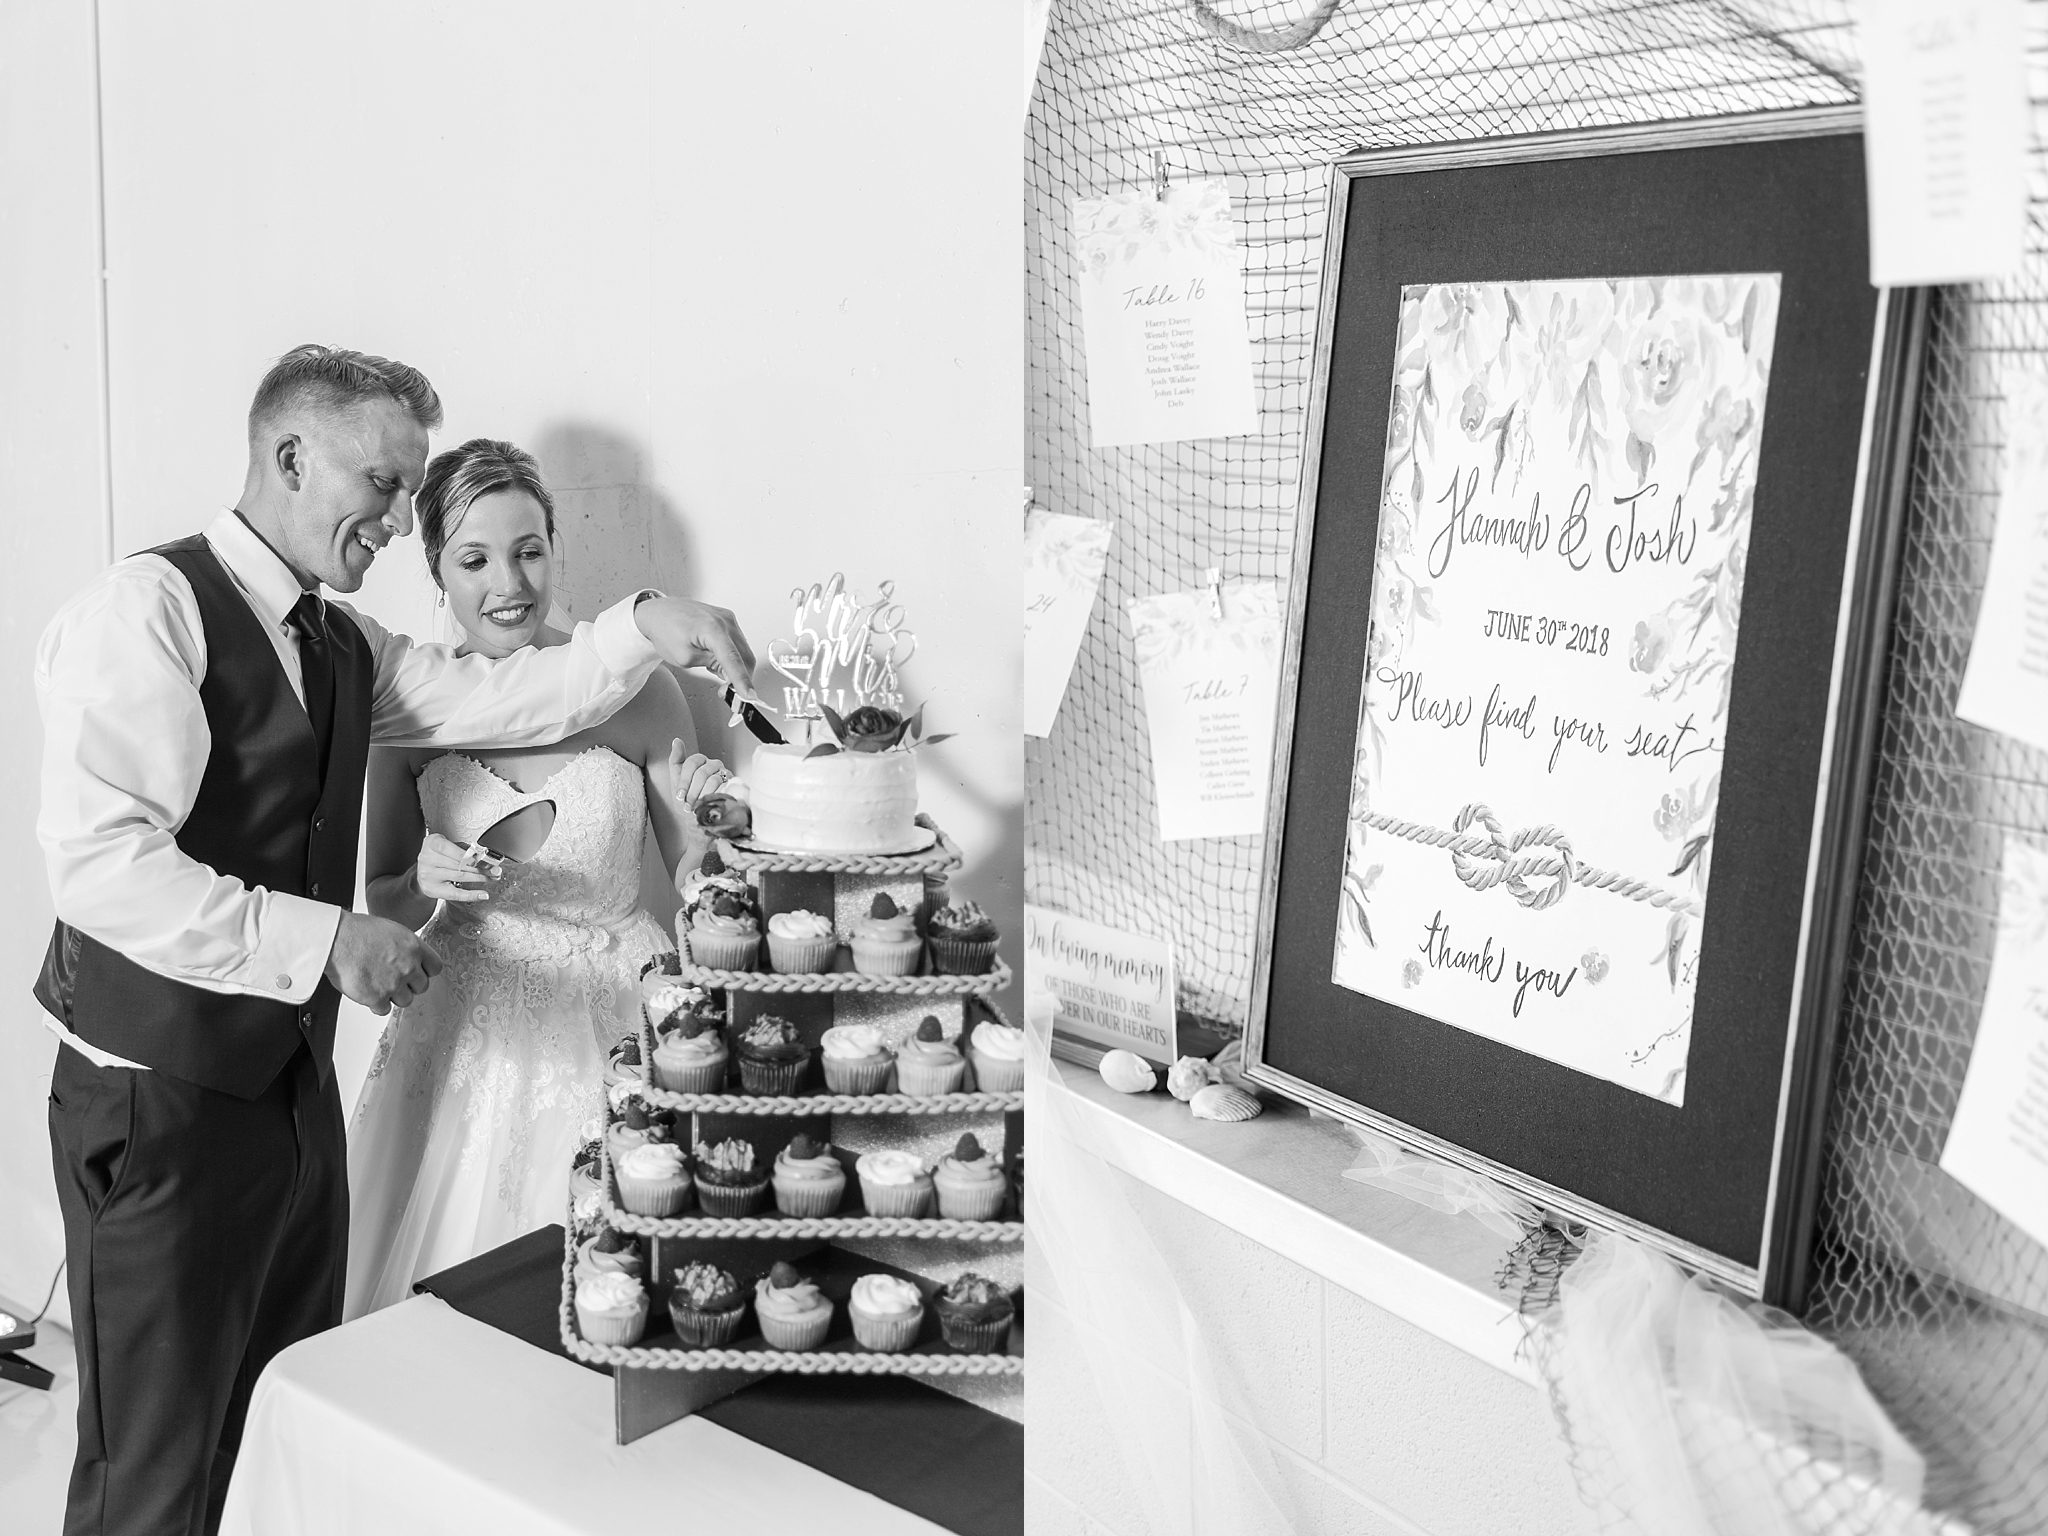 fun-nautical-wedding-photos-at-the-bean-dock-in-downtown-port-huron-michigan-by-courtney-carolyn-photography_0088.jpg